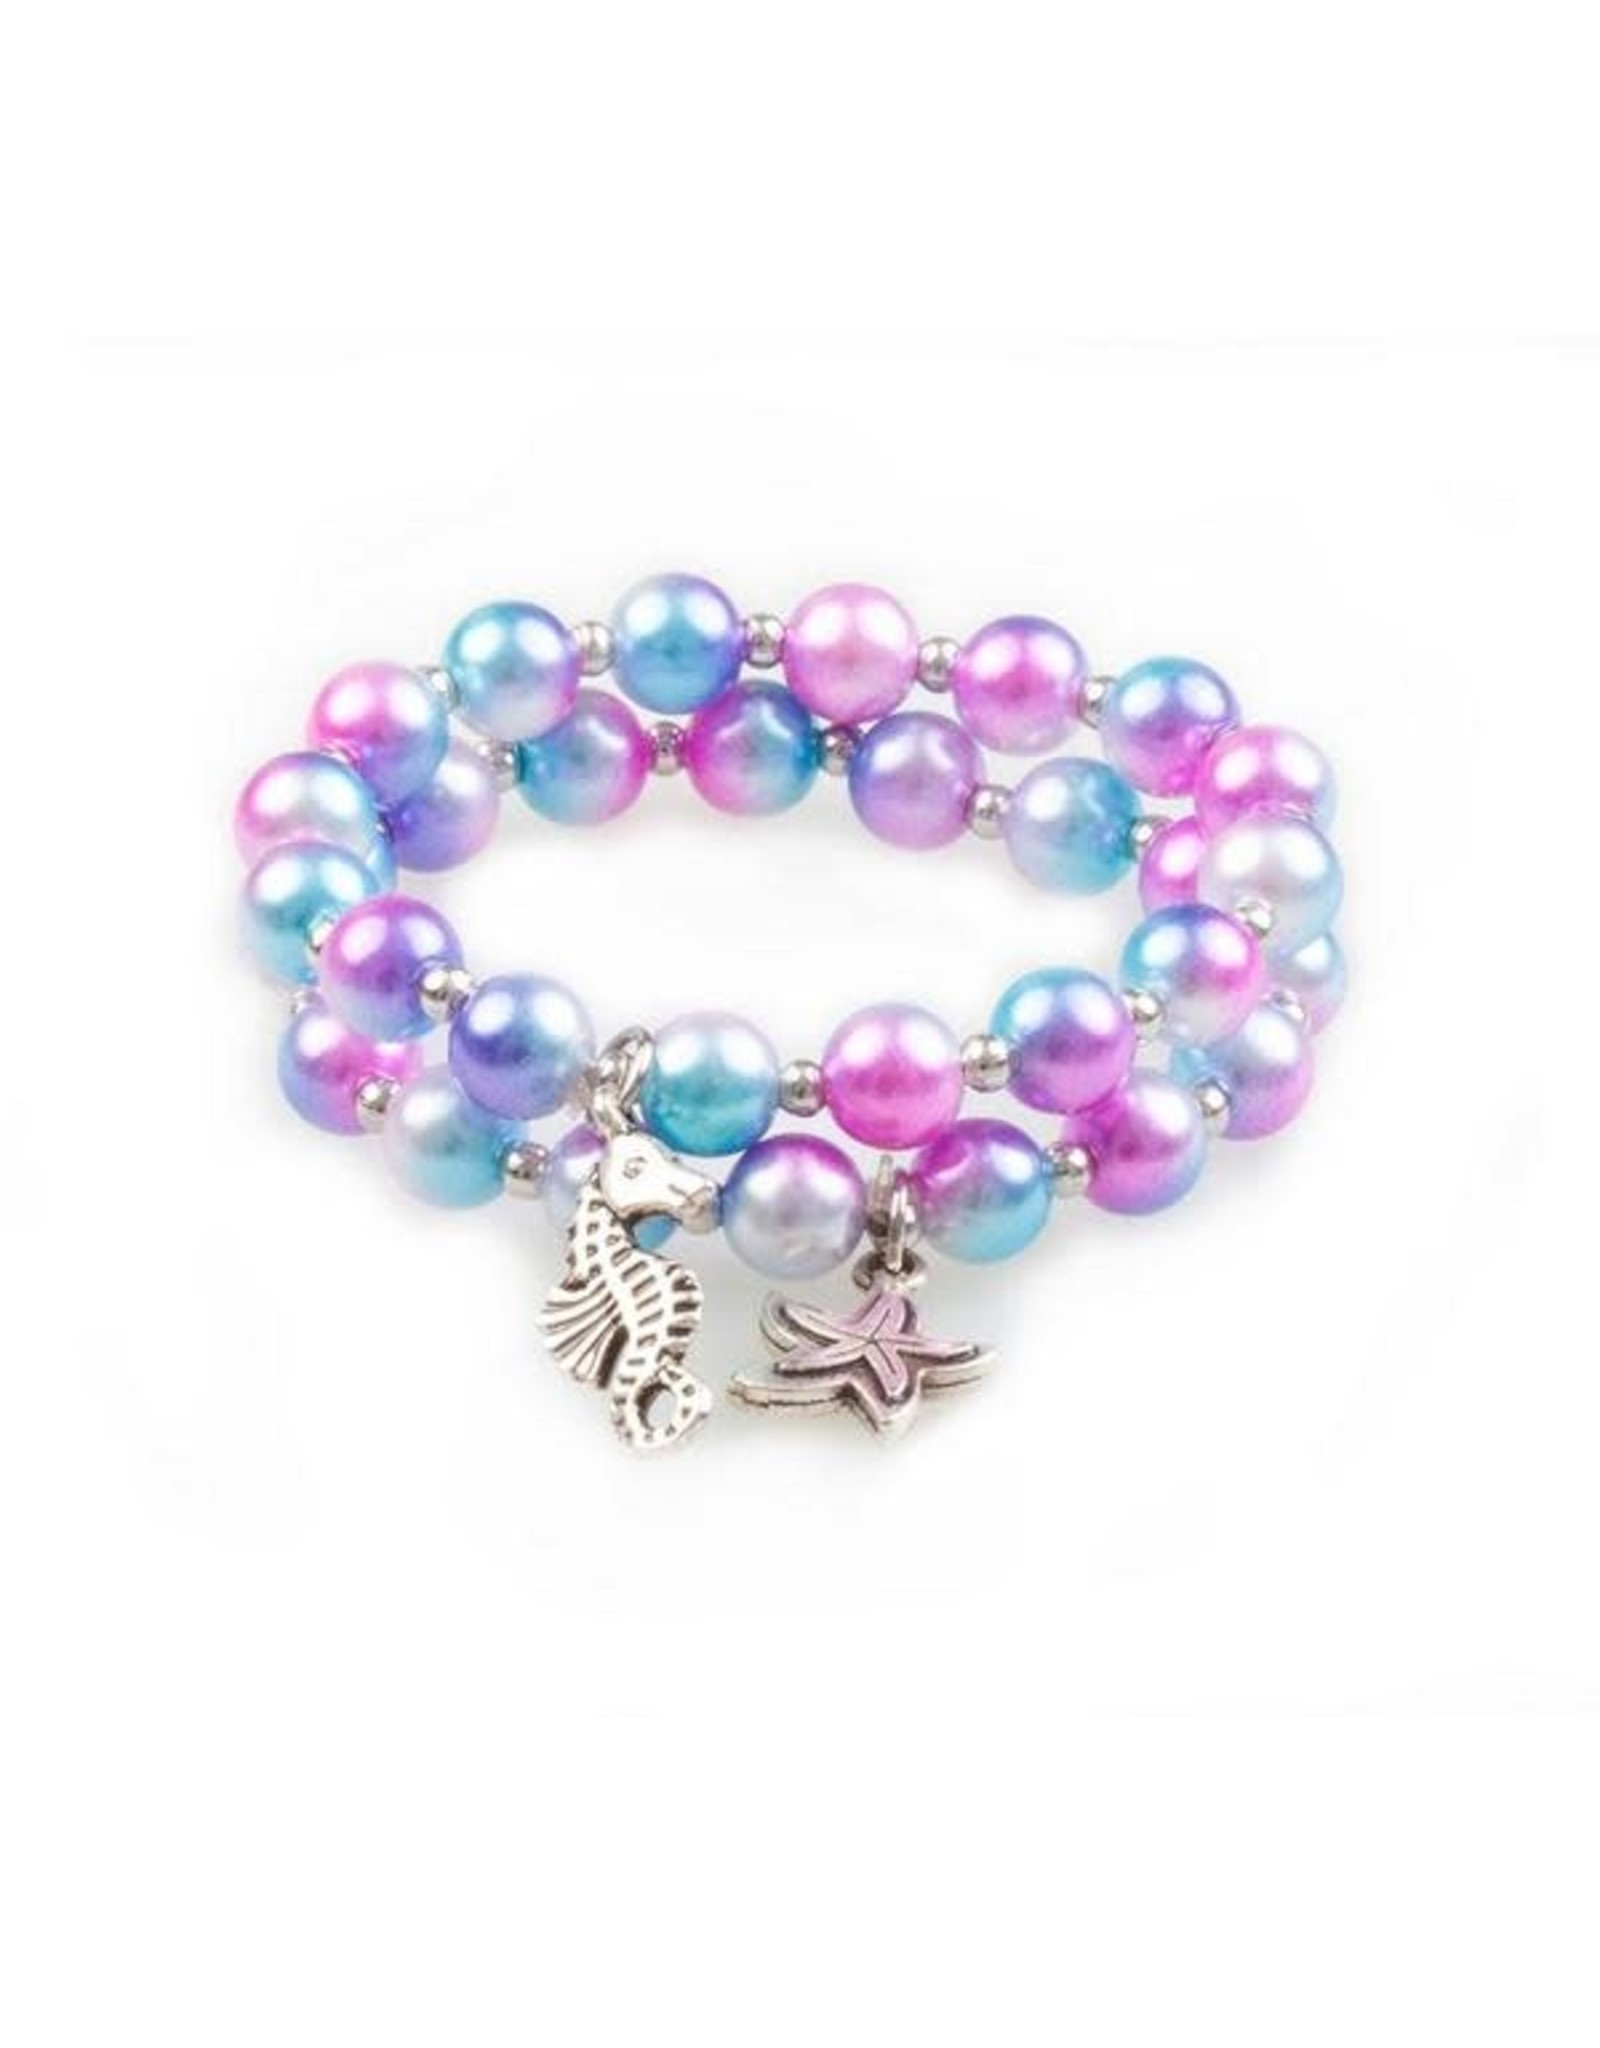 Great Pretenders Mermaid Mist Bracelet 2 pcs